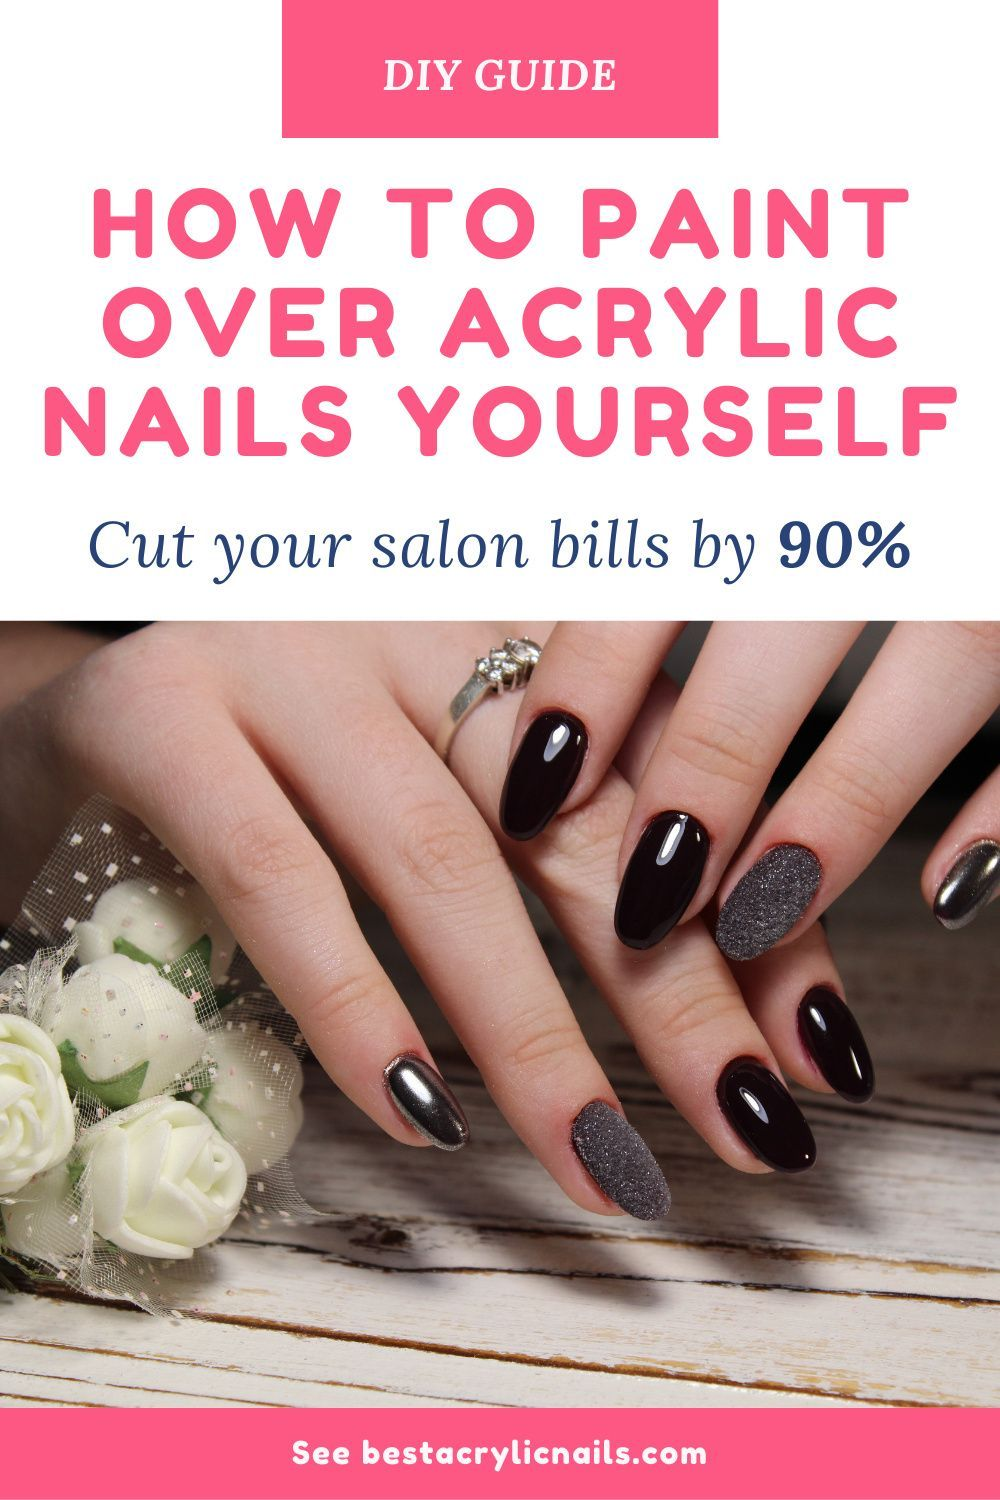 How To Remove Acrylic Nails At Home Easily Ehow The Acetone In The Nail Polish Remover Will Weaken Remove Acrylic Nails Nails At Home Take Off Acrylic Nails